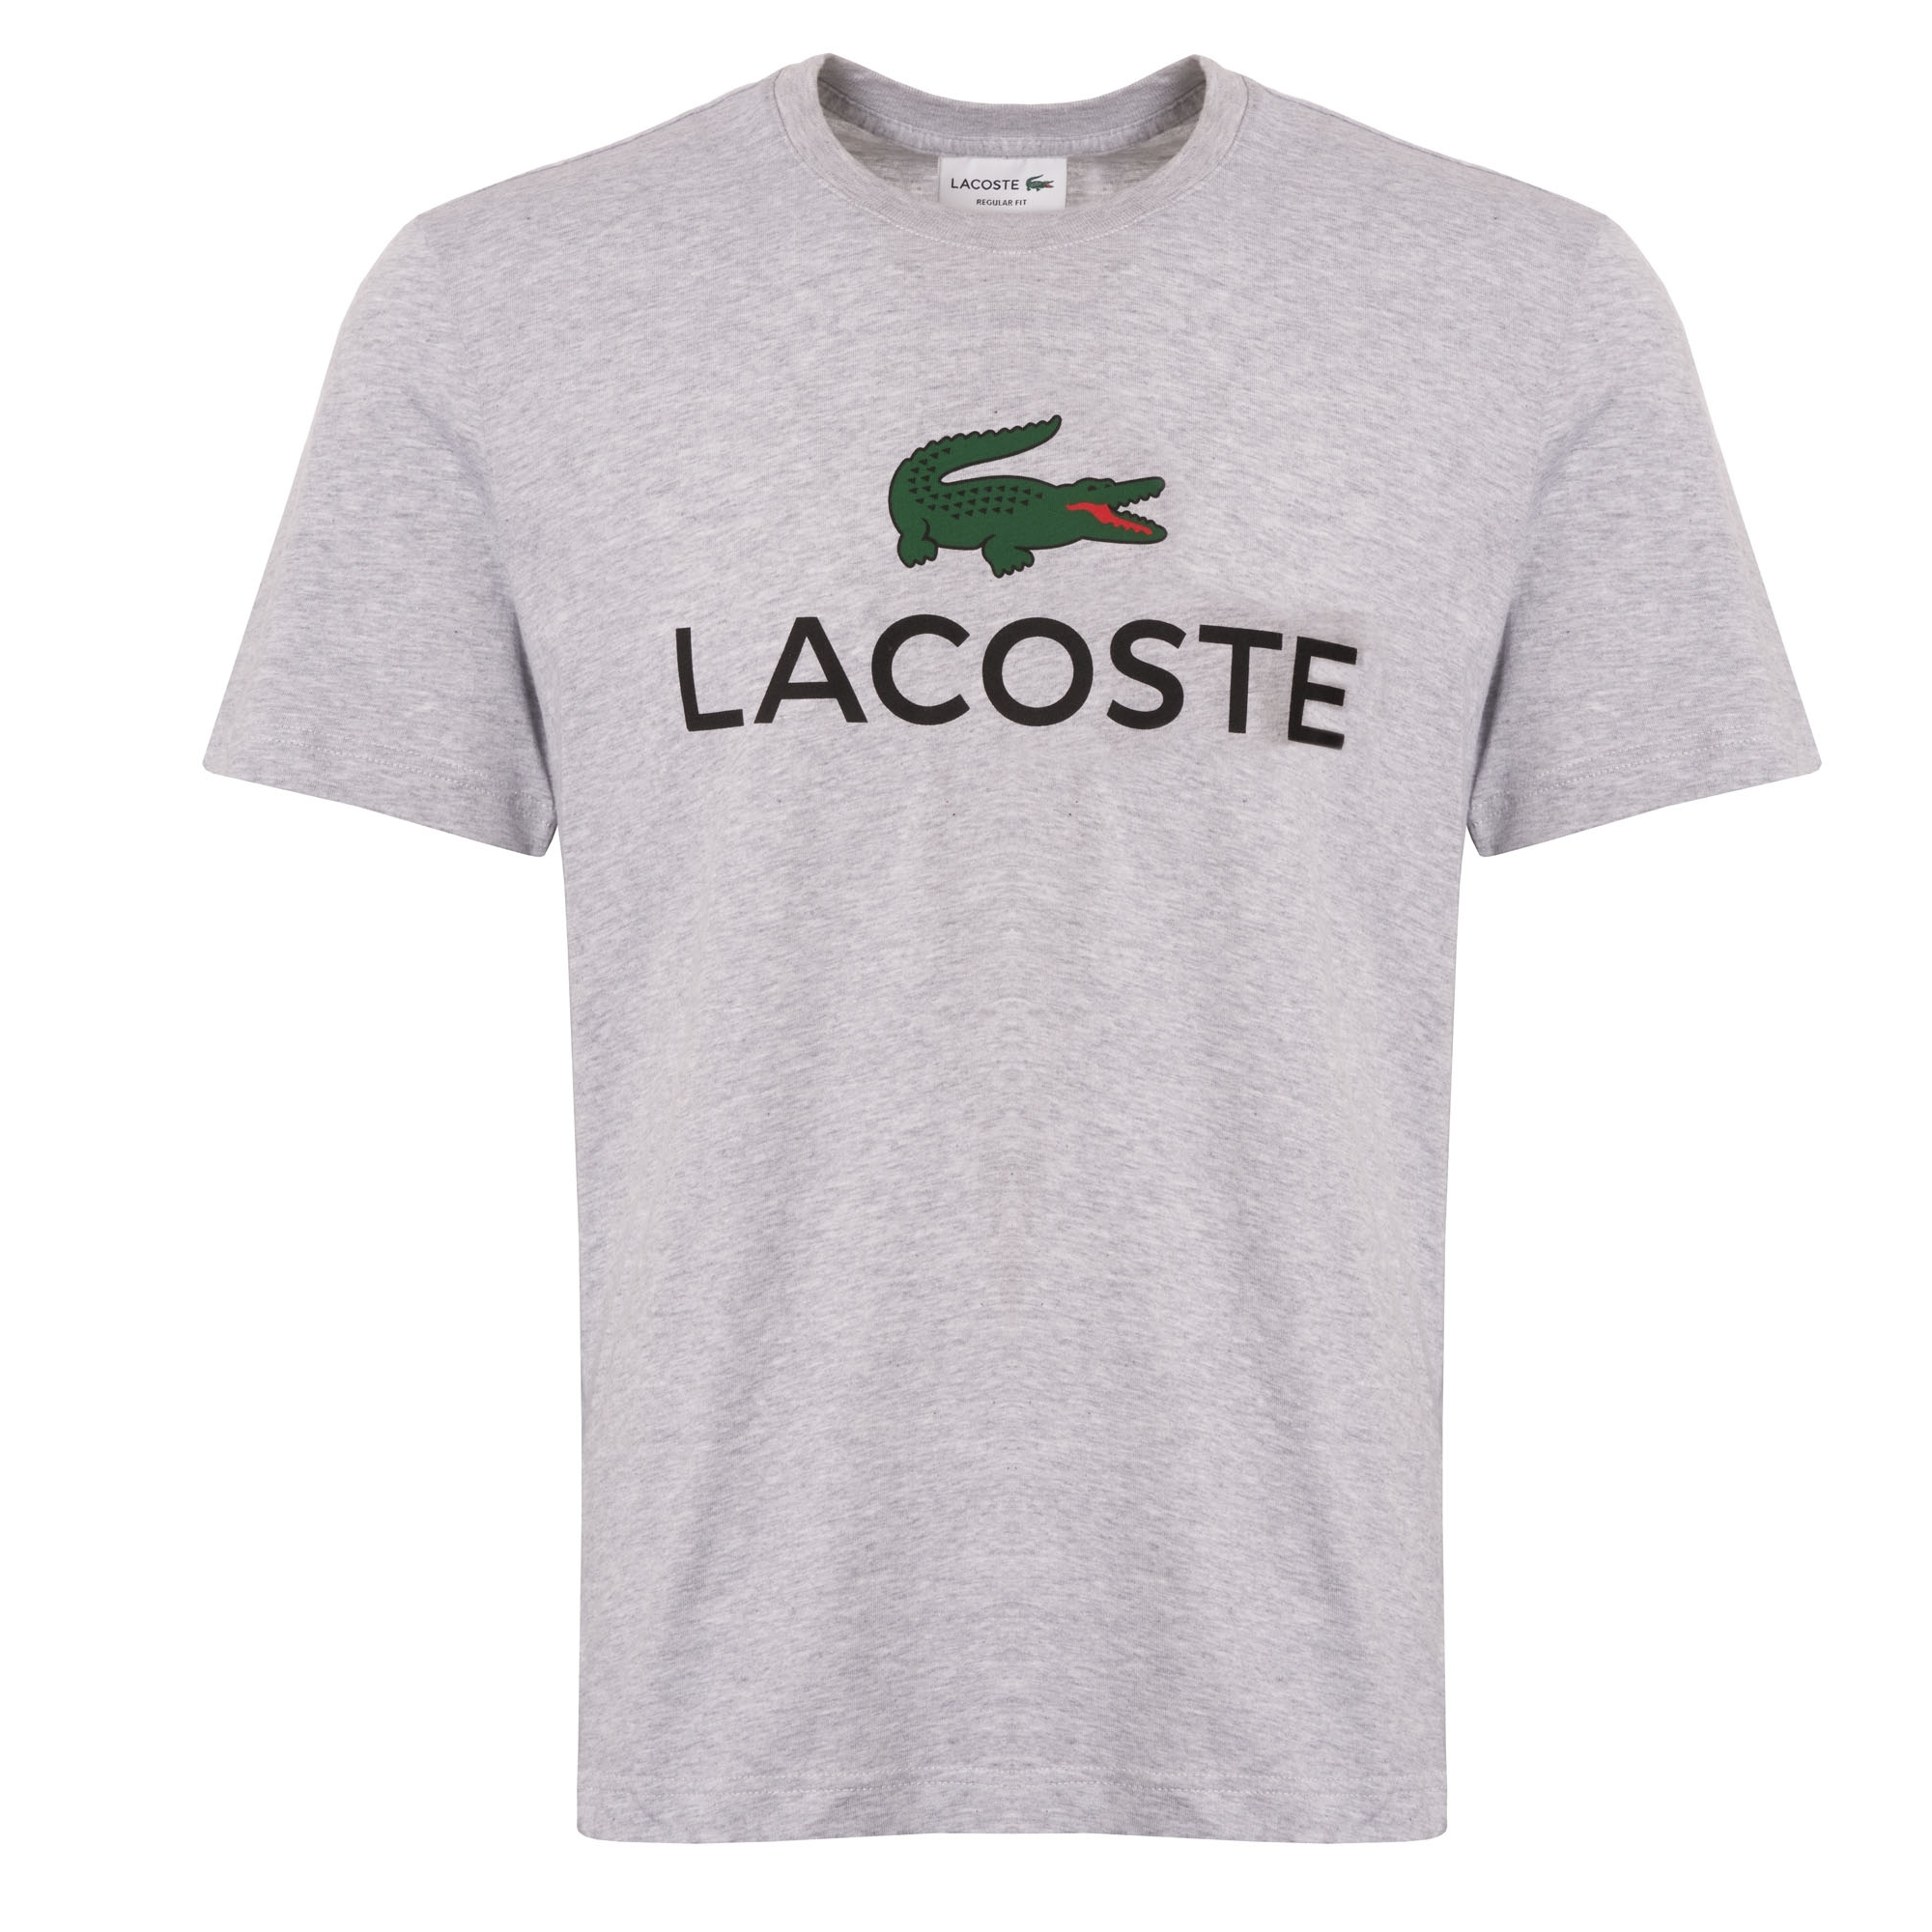 83b7f7d344025 Lacoste Large Logo T-Shirt (Silver Chine) at Dandy Fellow